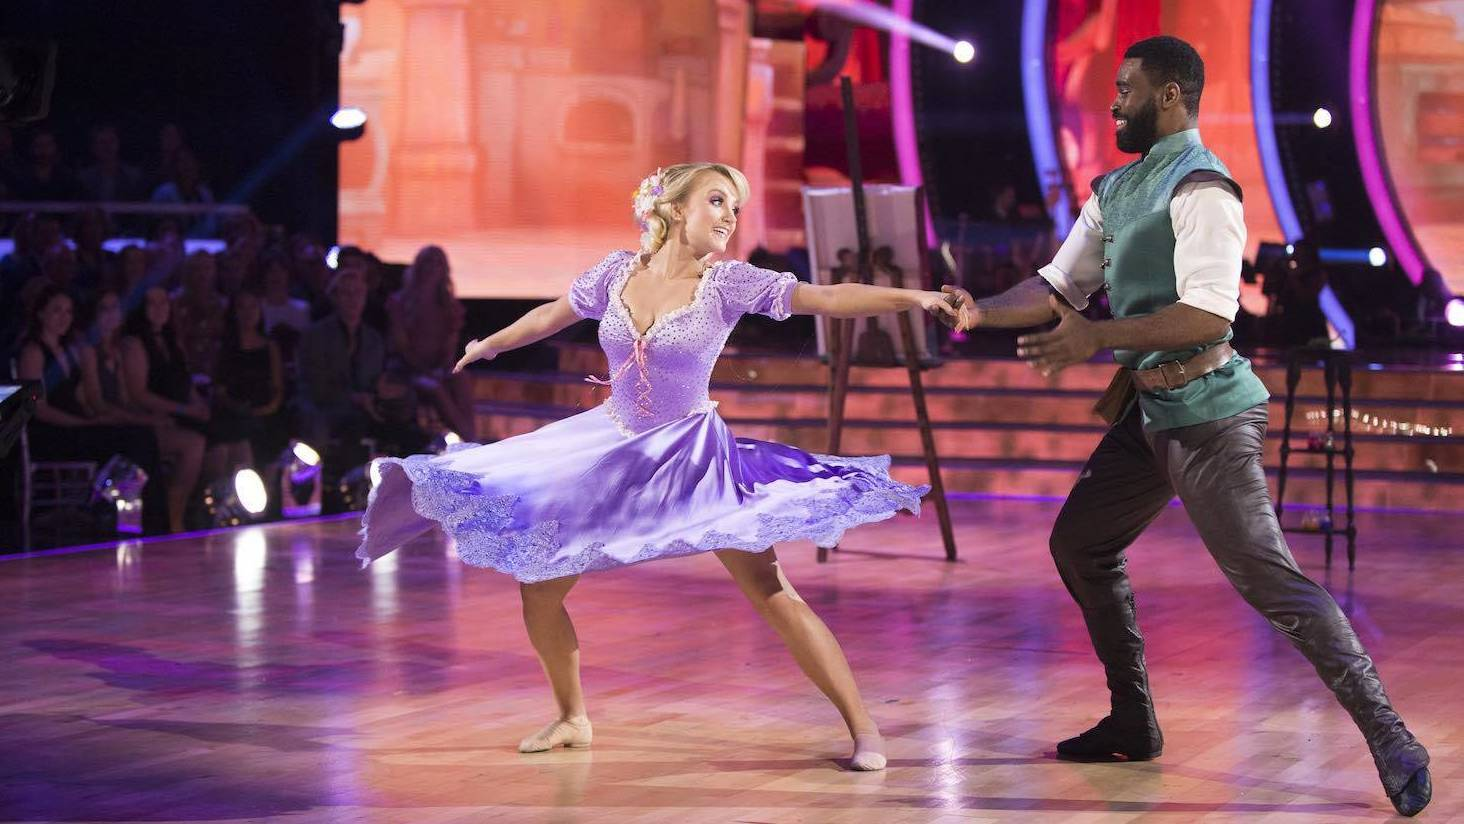 6 Magical Looks from Disney Night on Dancing with the Stars